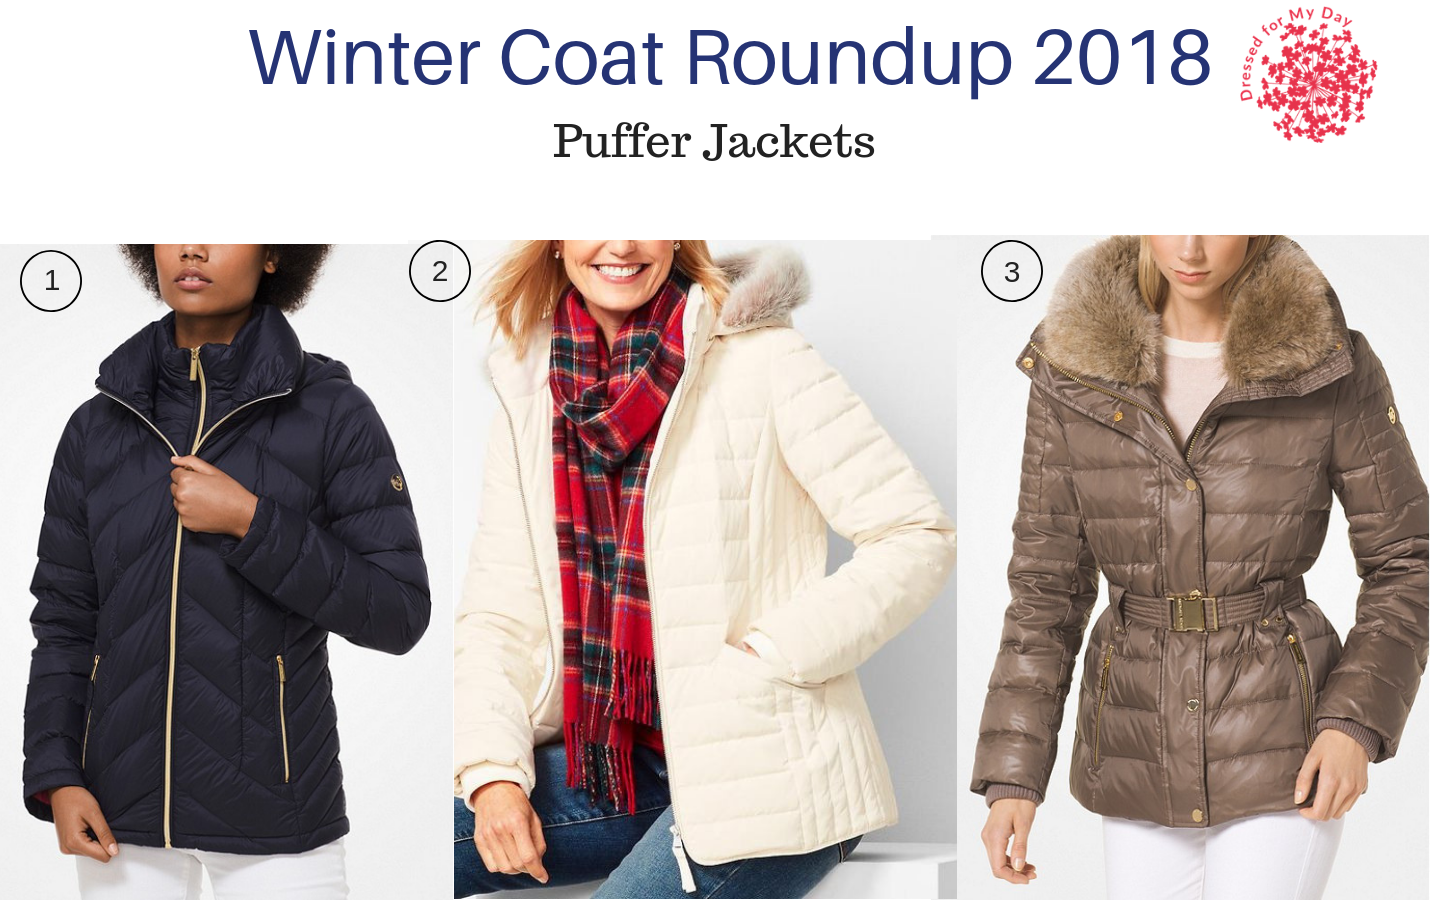 Winter Coat Roundup 2018 Puffer Jackets